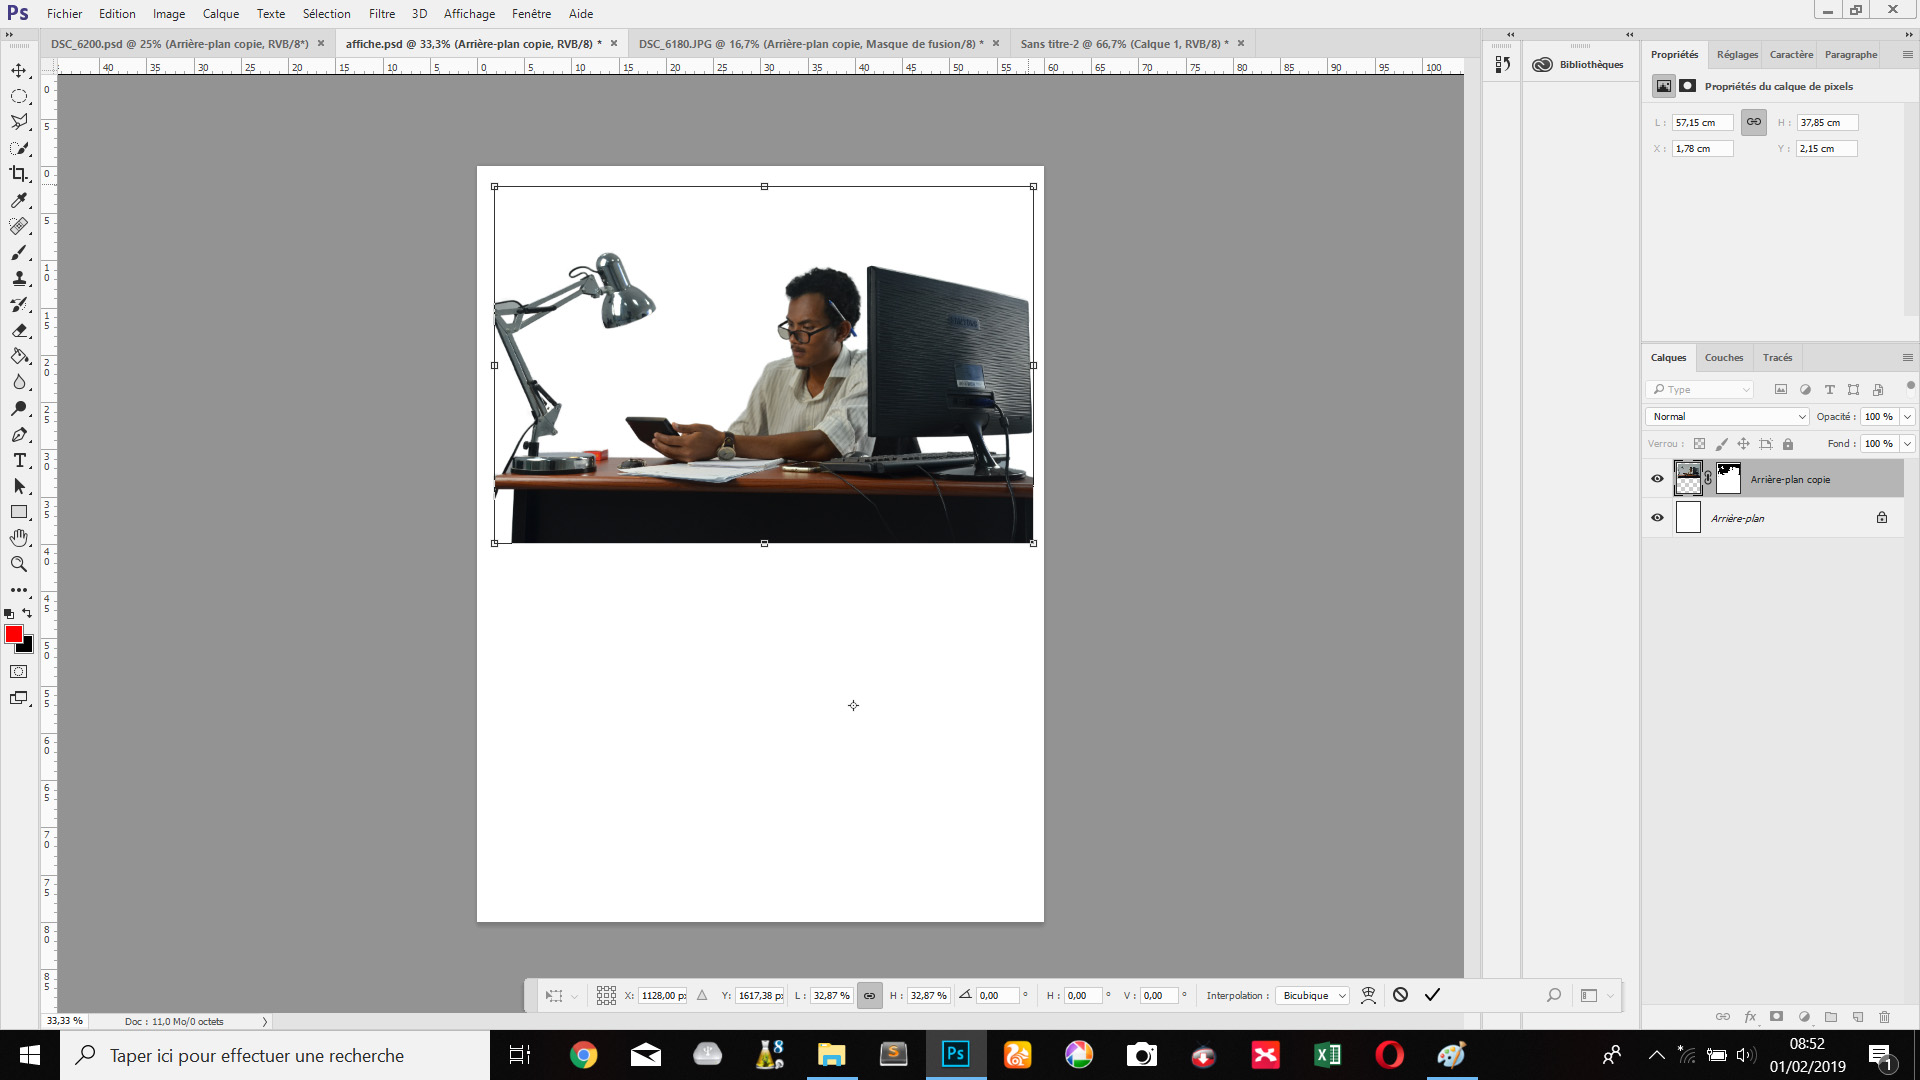 See the need to properly cut an image to create a poste